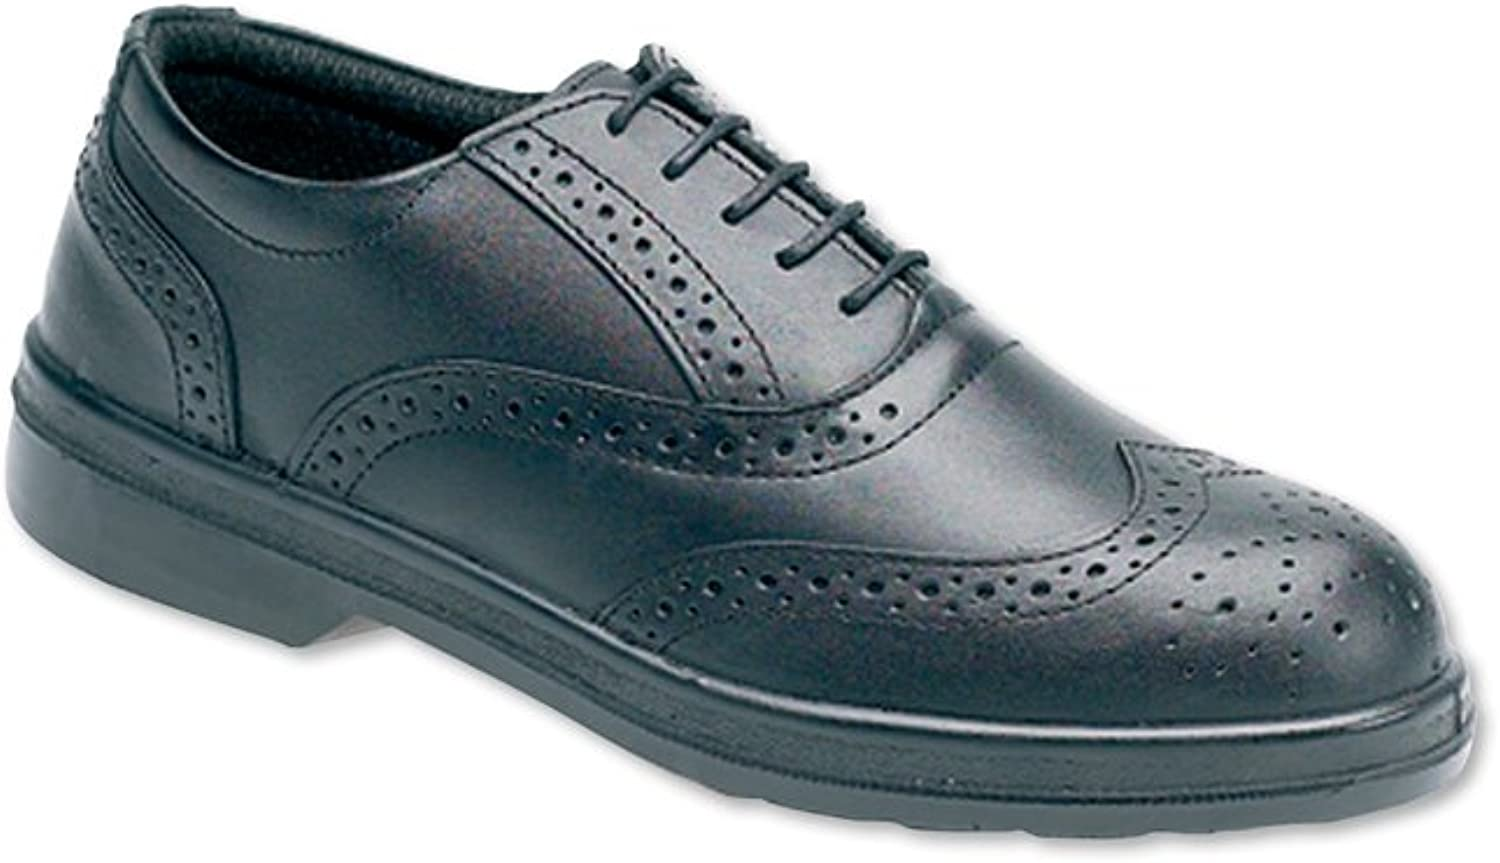 Alexandra STC-FW129BK-9 Men's Safety Brogues, Plain, Dual-Density Polyurethane, Size  9, Black